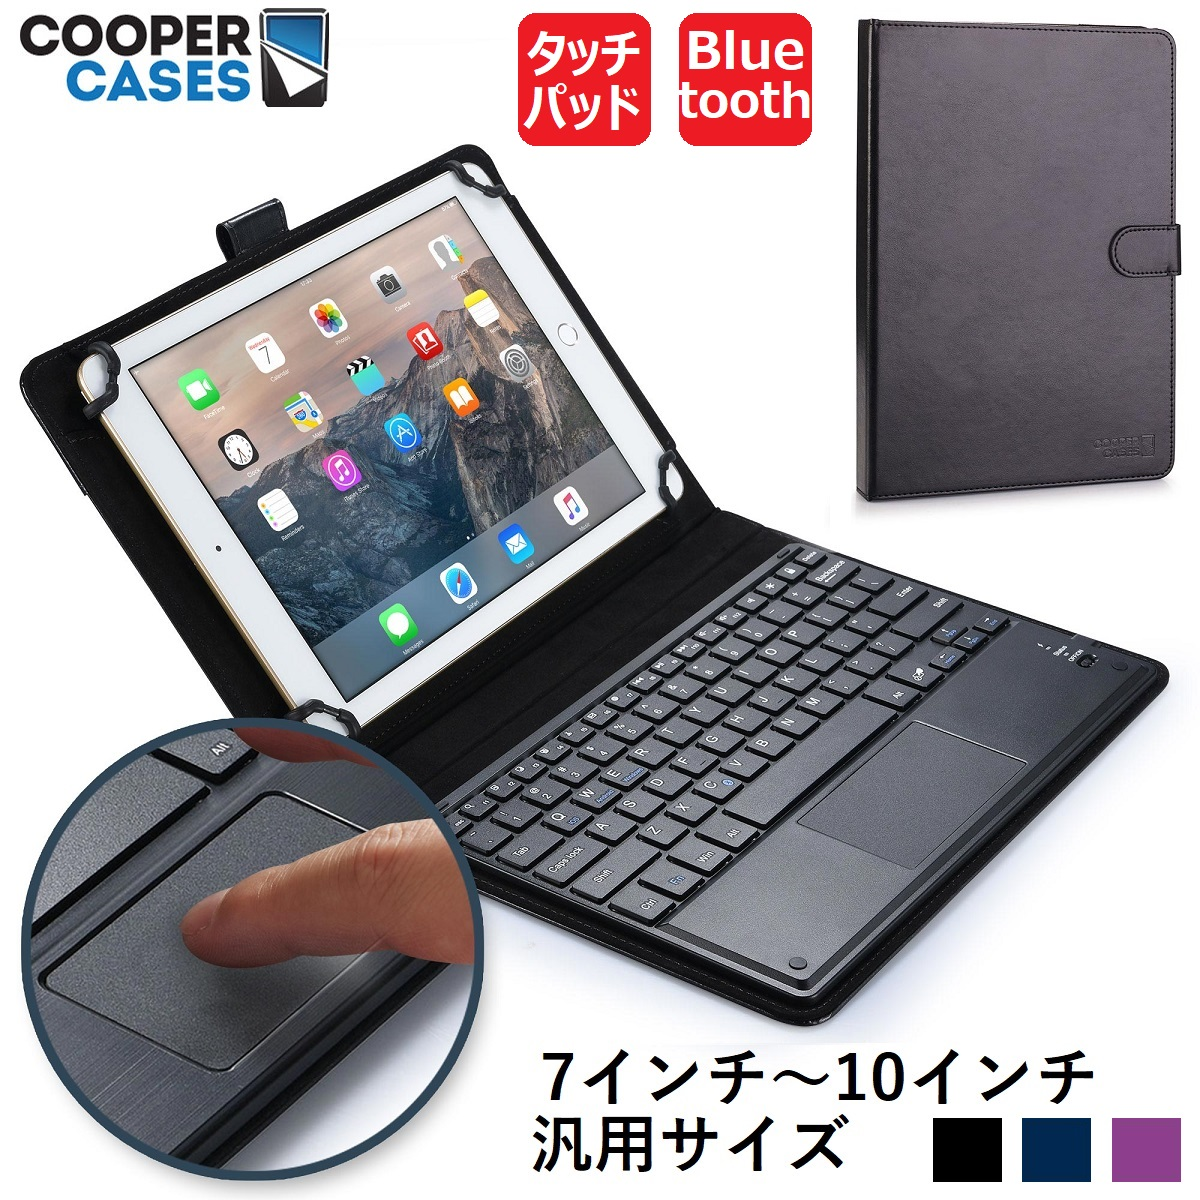 9 inches of tablet case keyboard touch pad bluetooth 8 inches 8 4 10 inches  10 1 inches general-purpose Huawai Mediapad d-02k d-01j d-02h dtab arrows